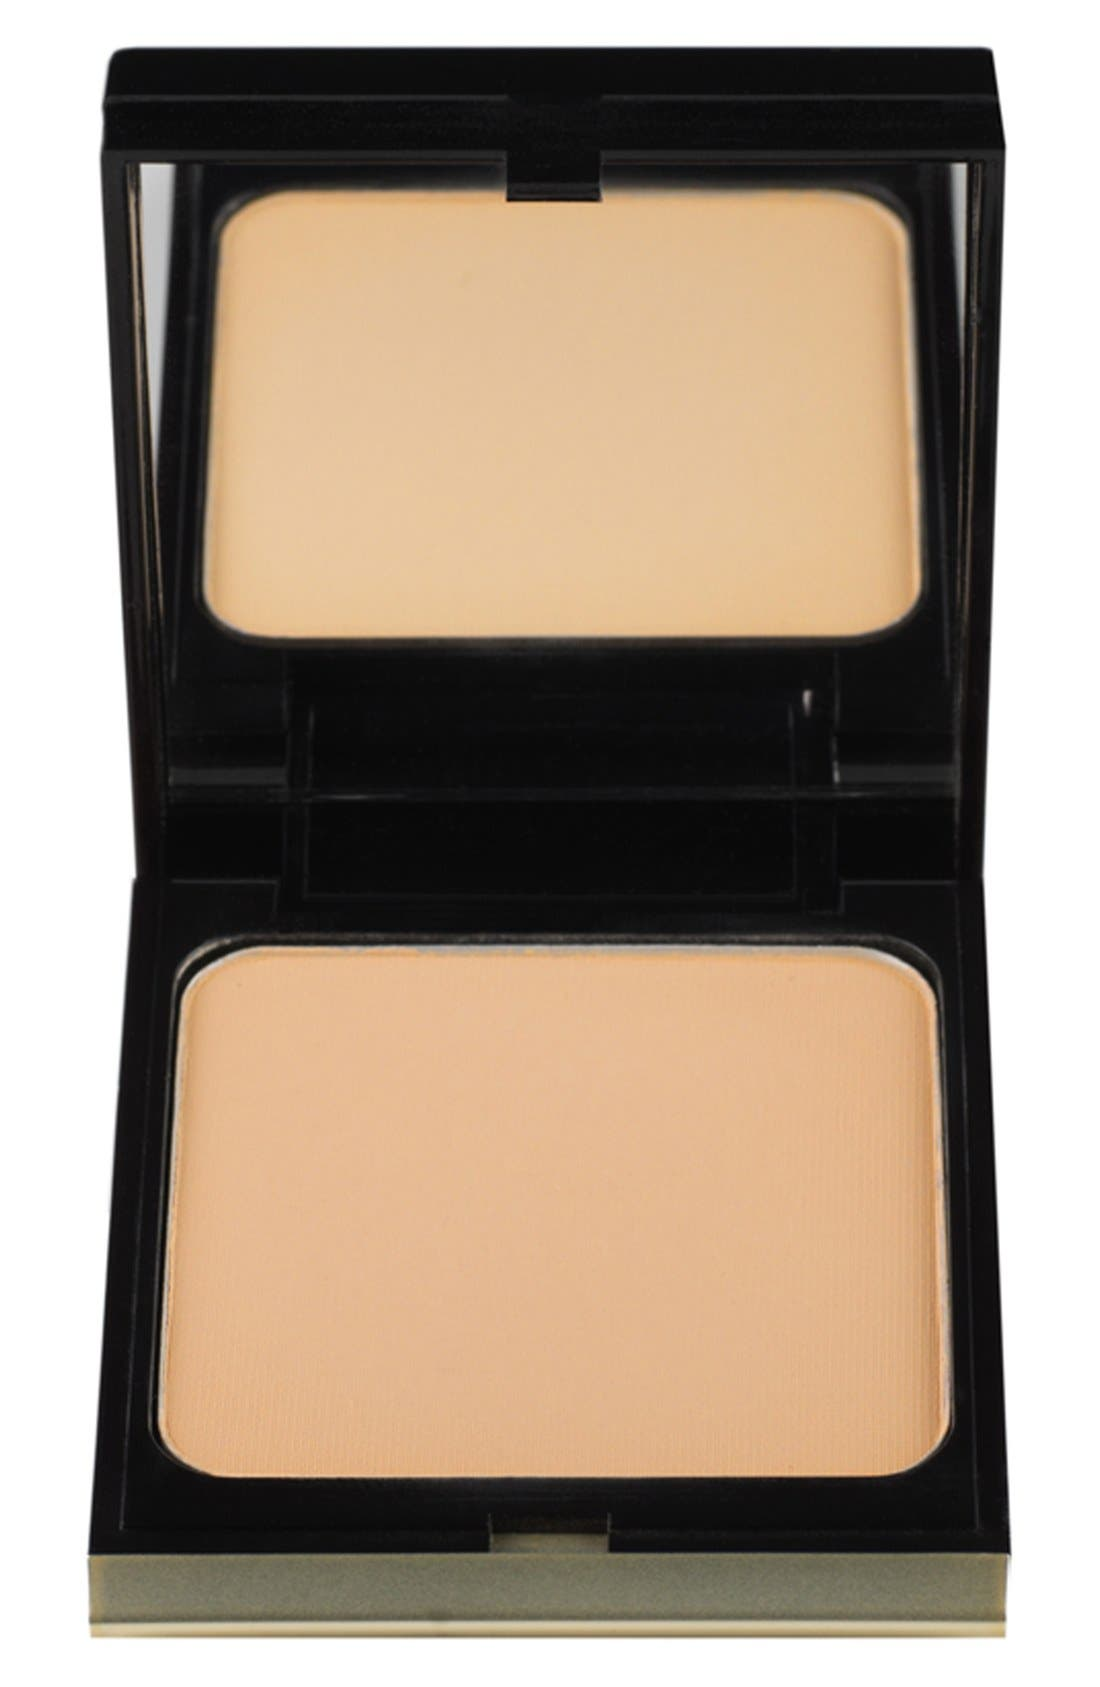 SPACE.NK.apothecary Kevyn Aucoin Beauty The Sensual Skin Powder Foundation